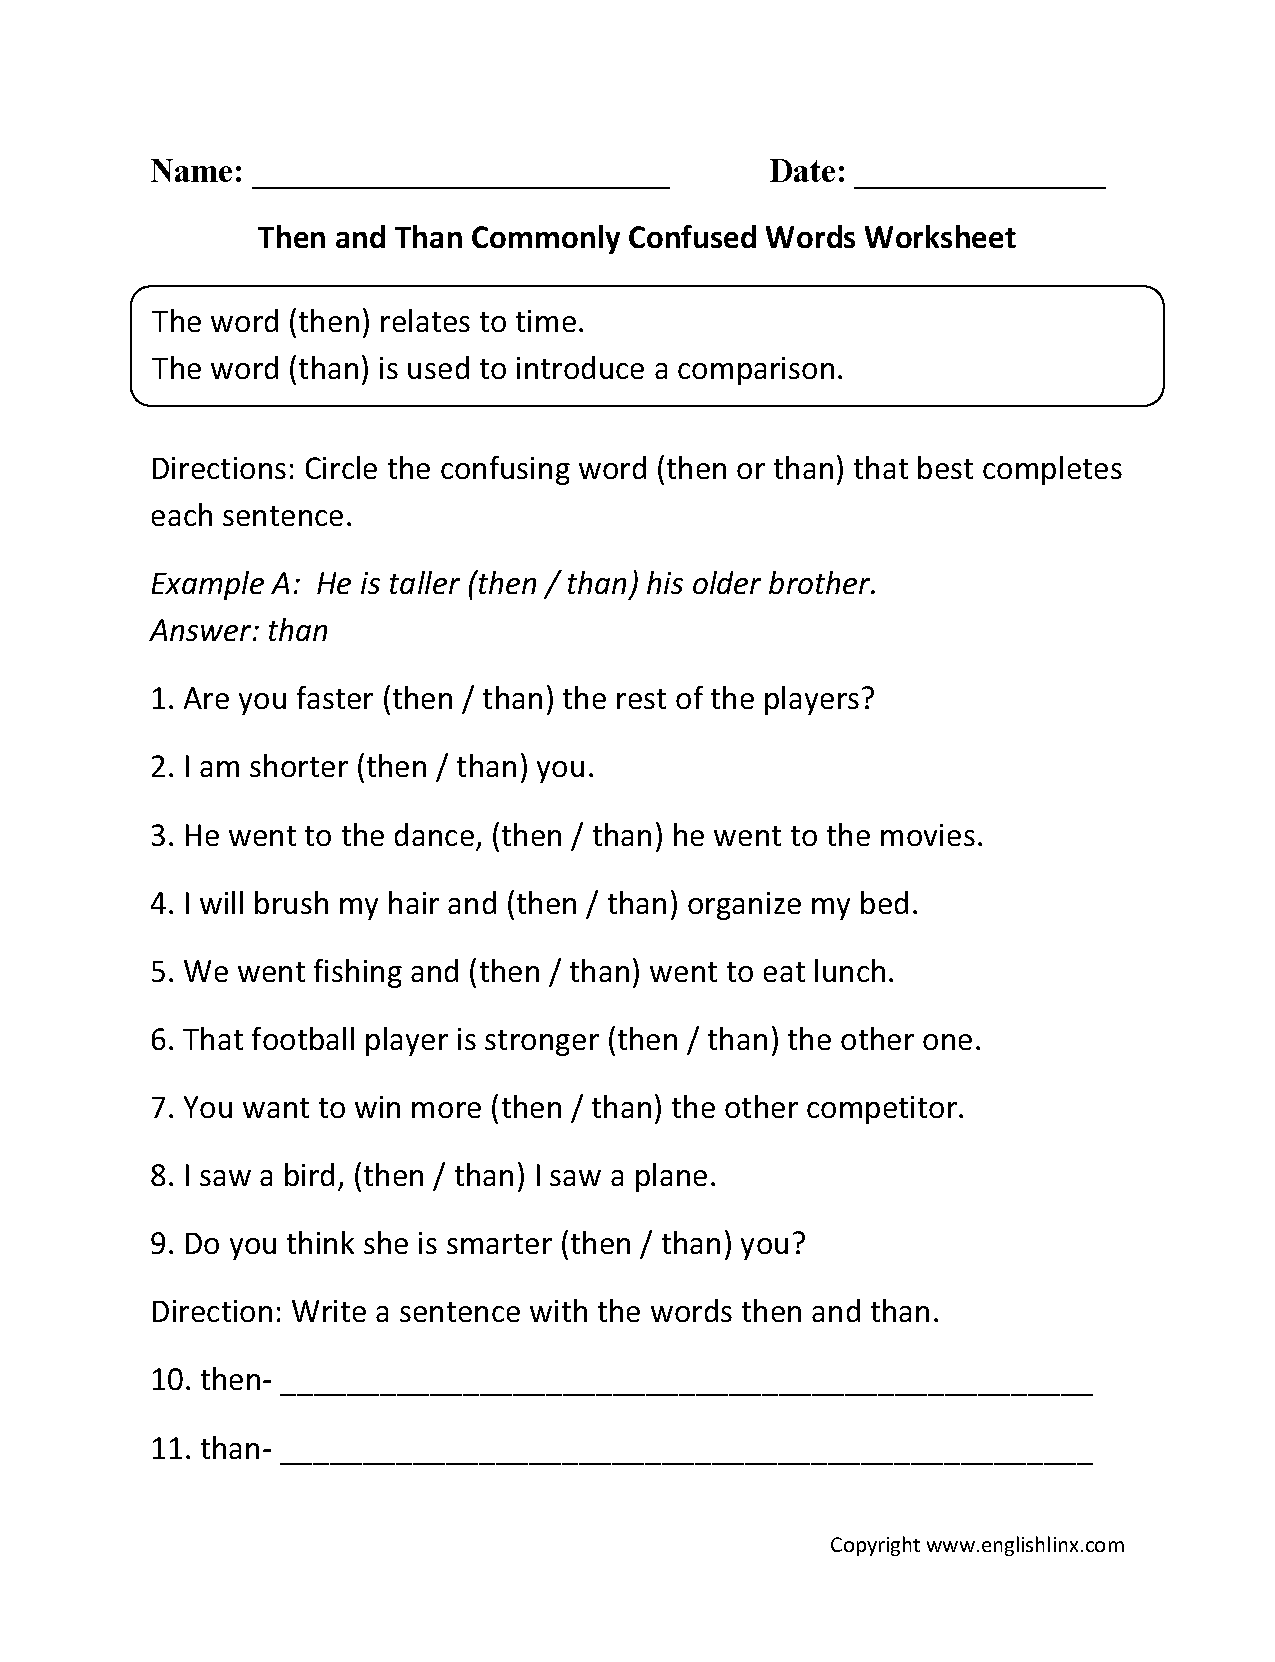 Uncategorized Homophones Worksheet commonly confused words worksheets then vs than worksheets